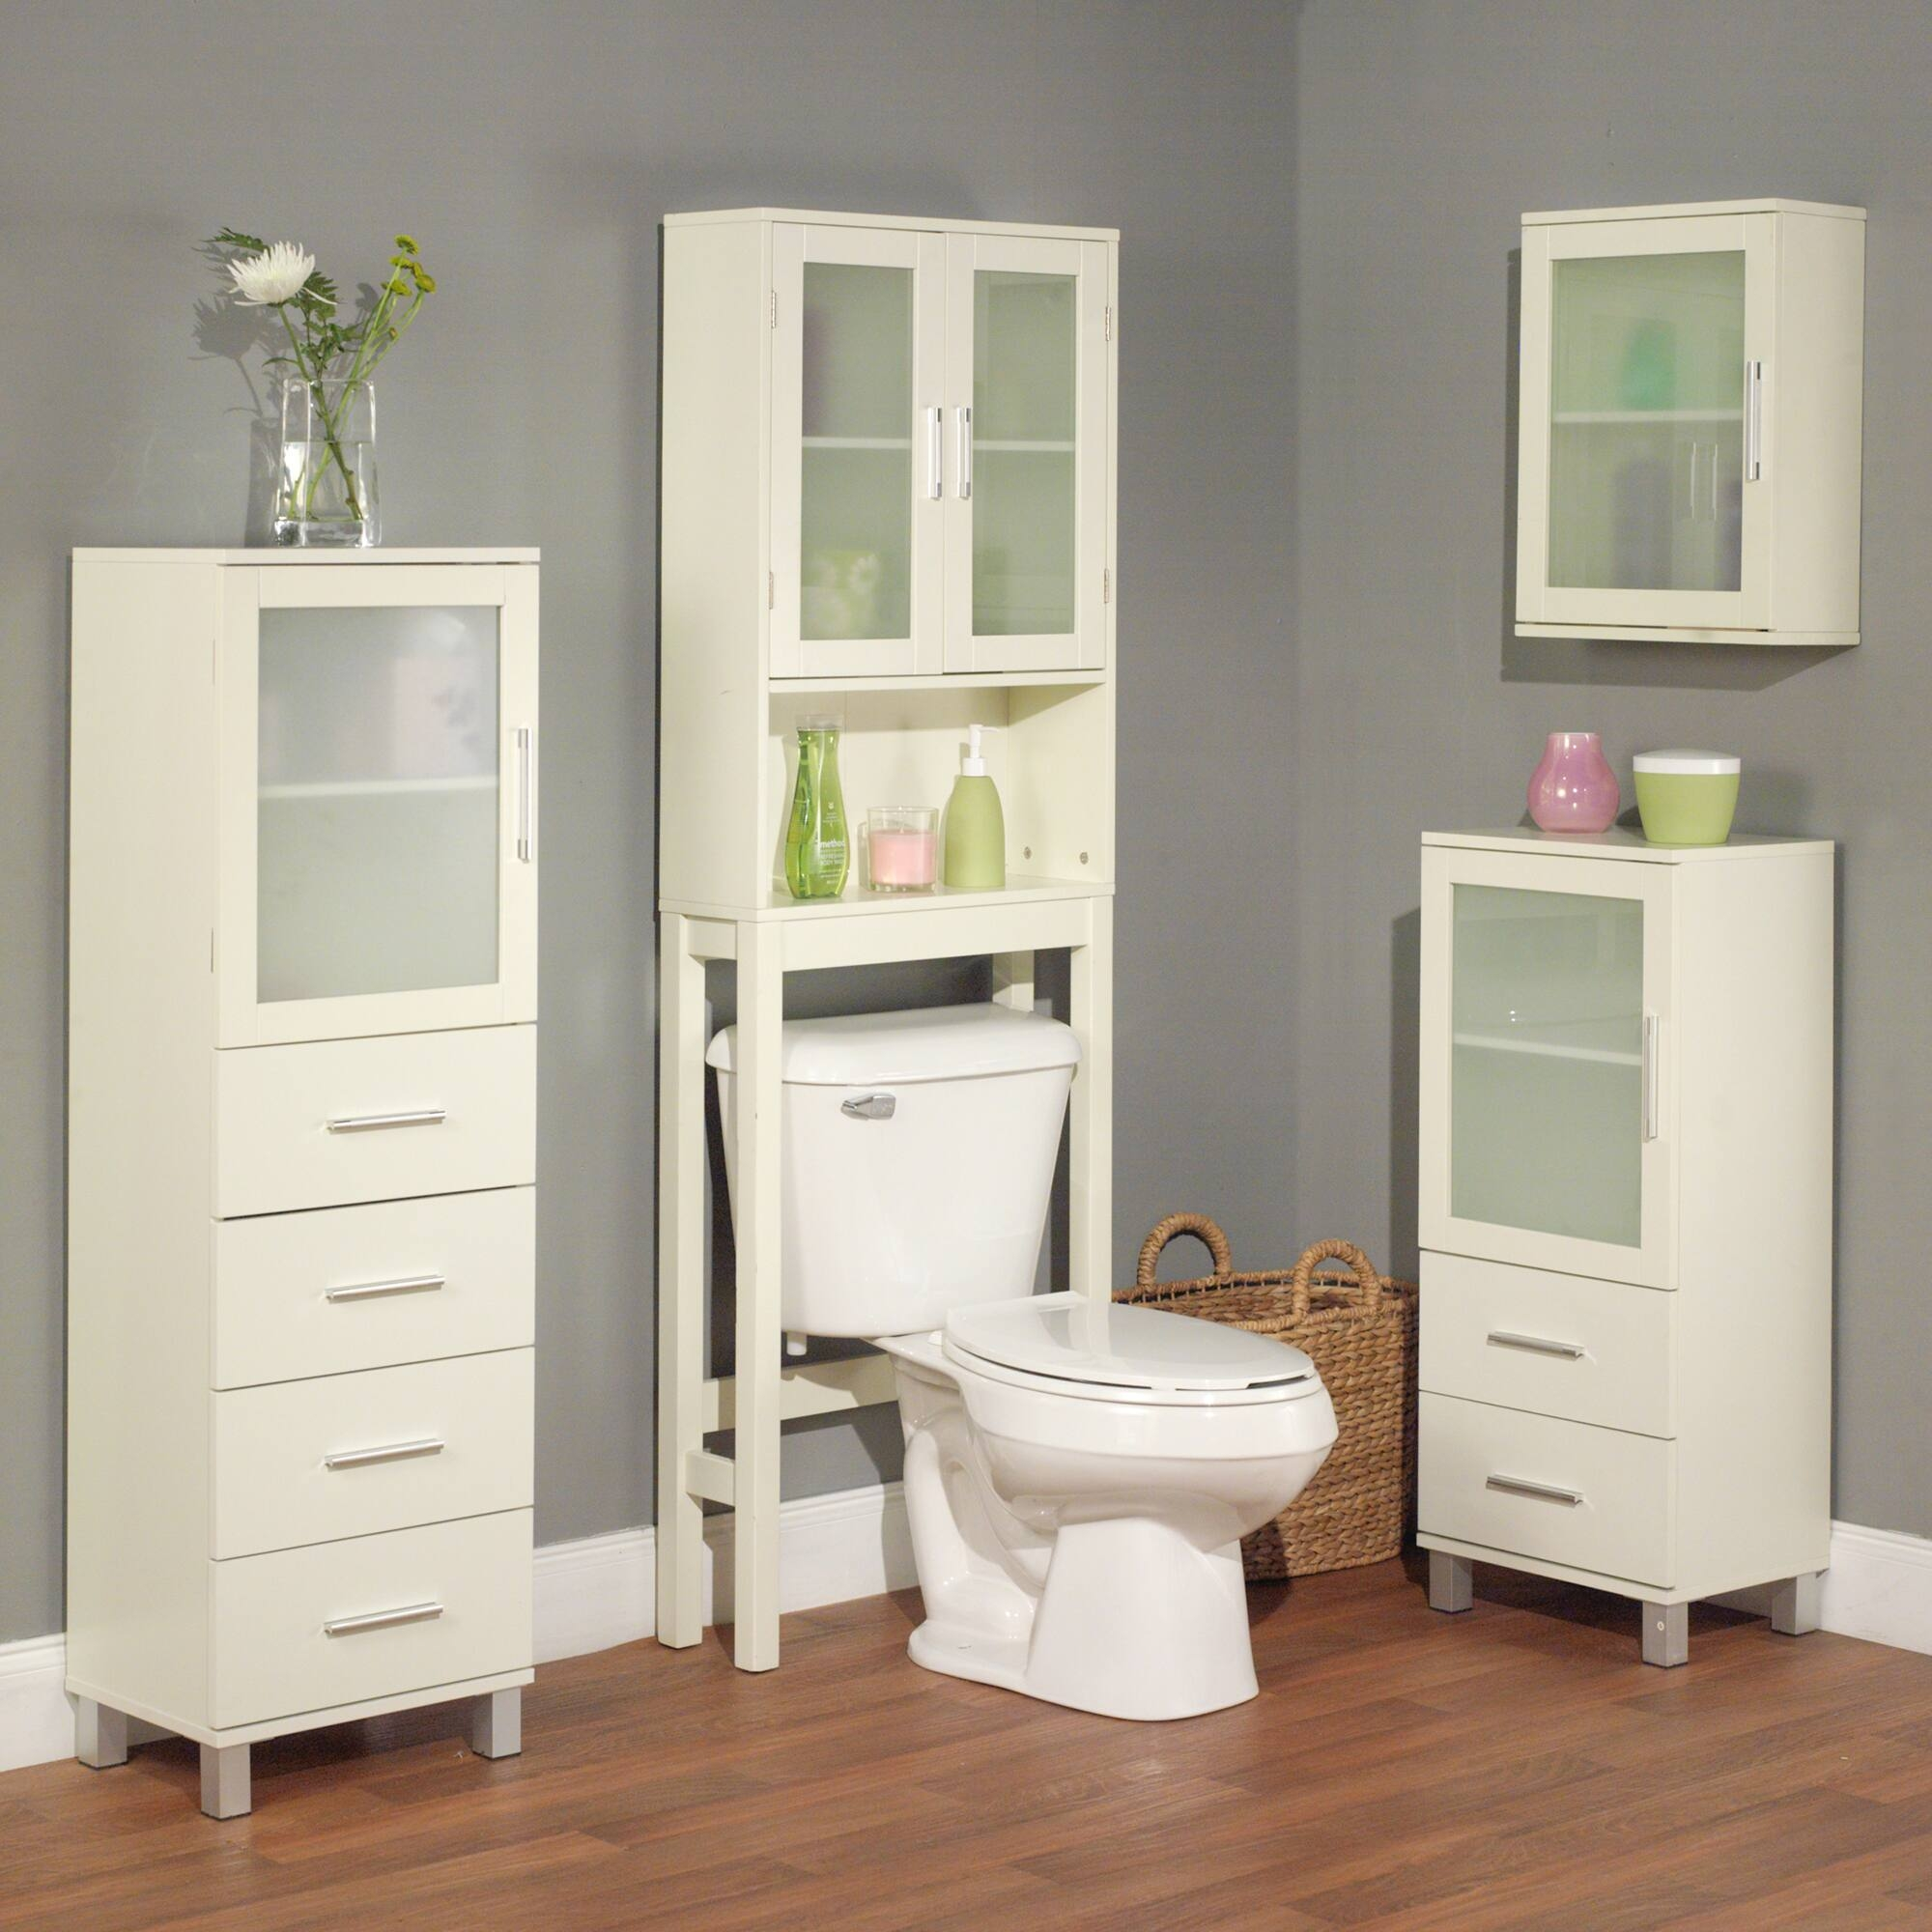 Attrayant Frosted Pane Shelf White Linen Cabinet 2 Drawer 2 Bathroom Storage Cabinet.  Great For Bath